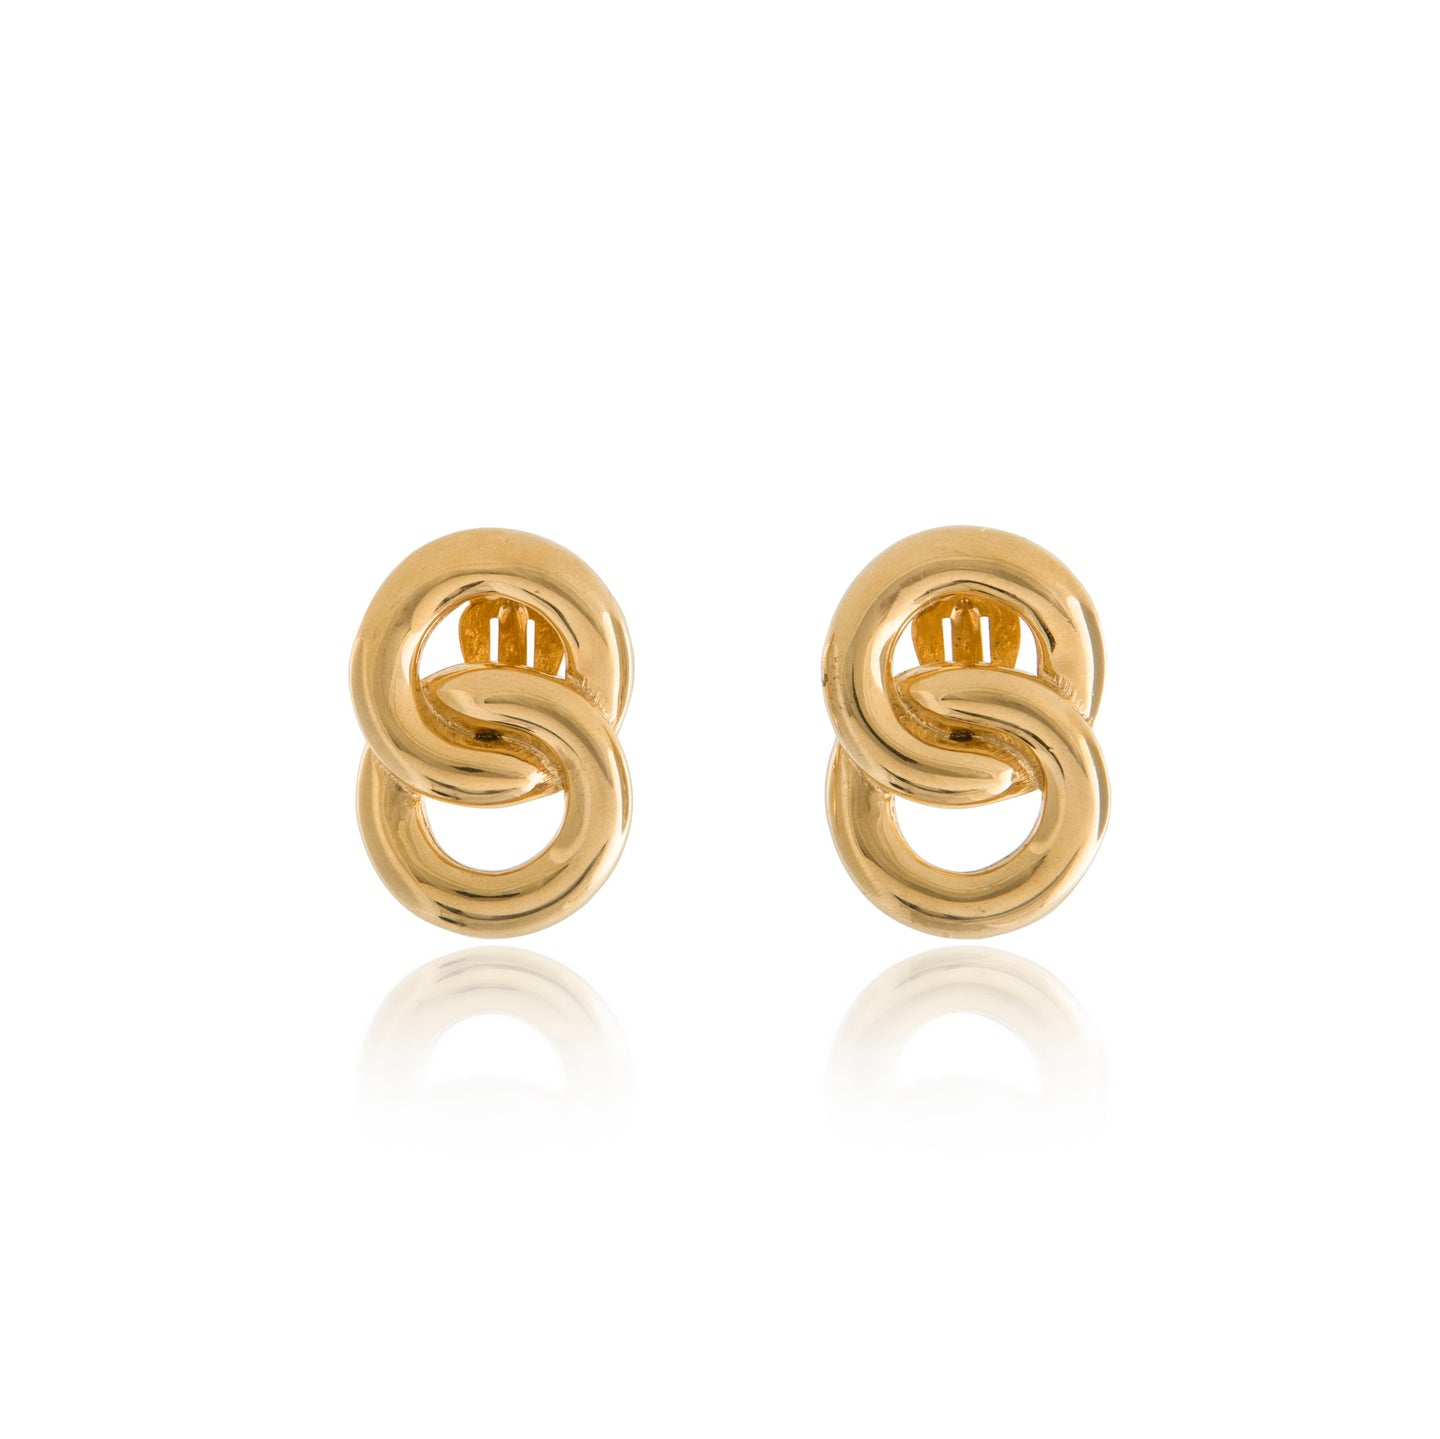 Vintage Givenchy Link Earrings